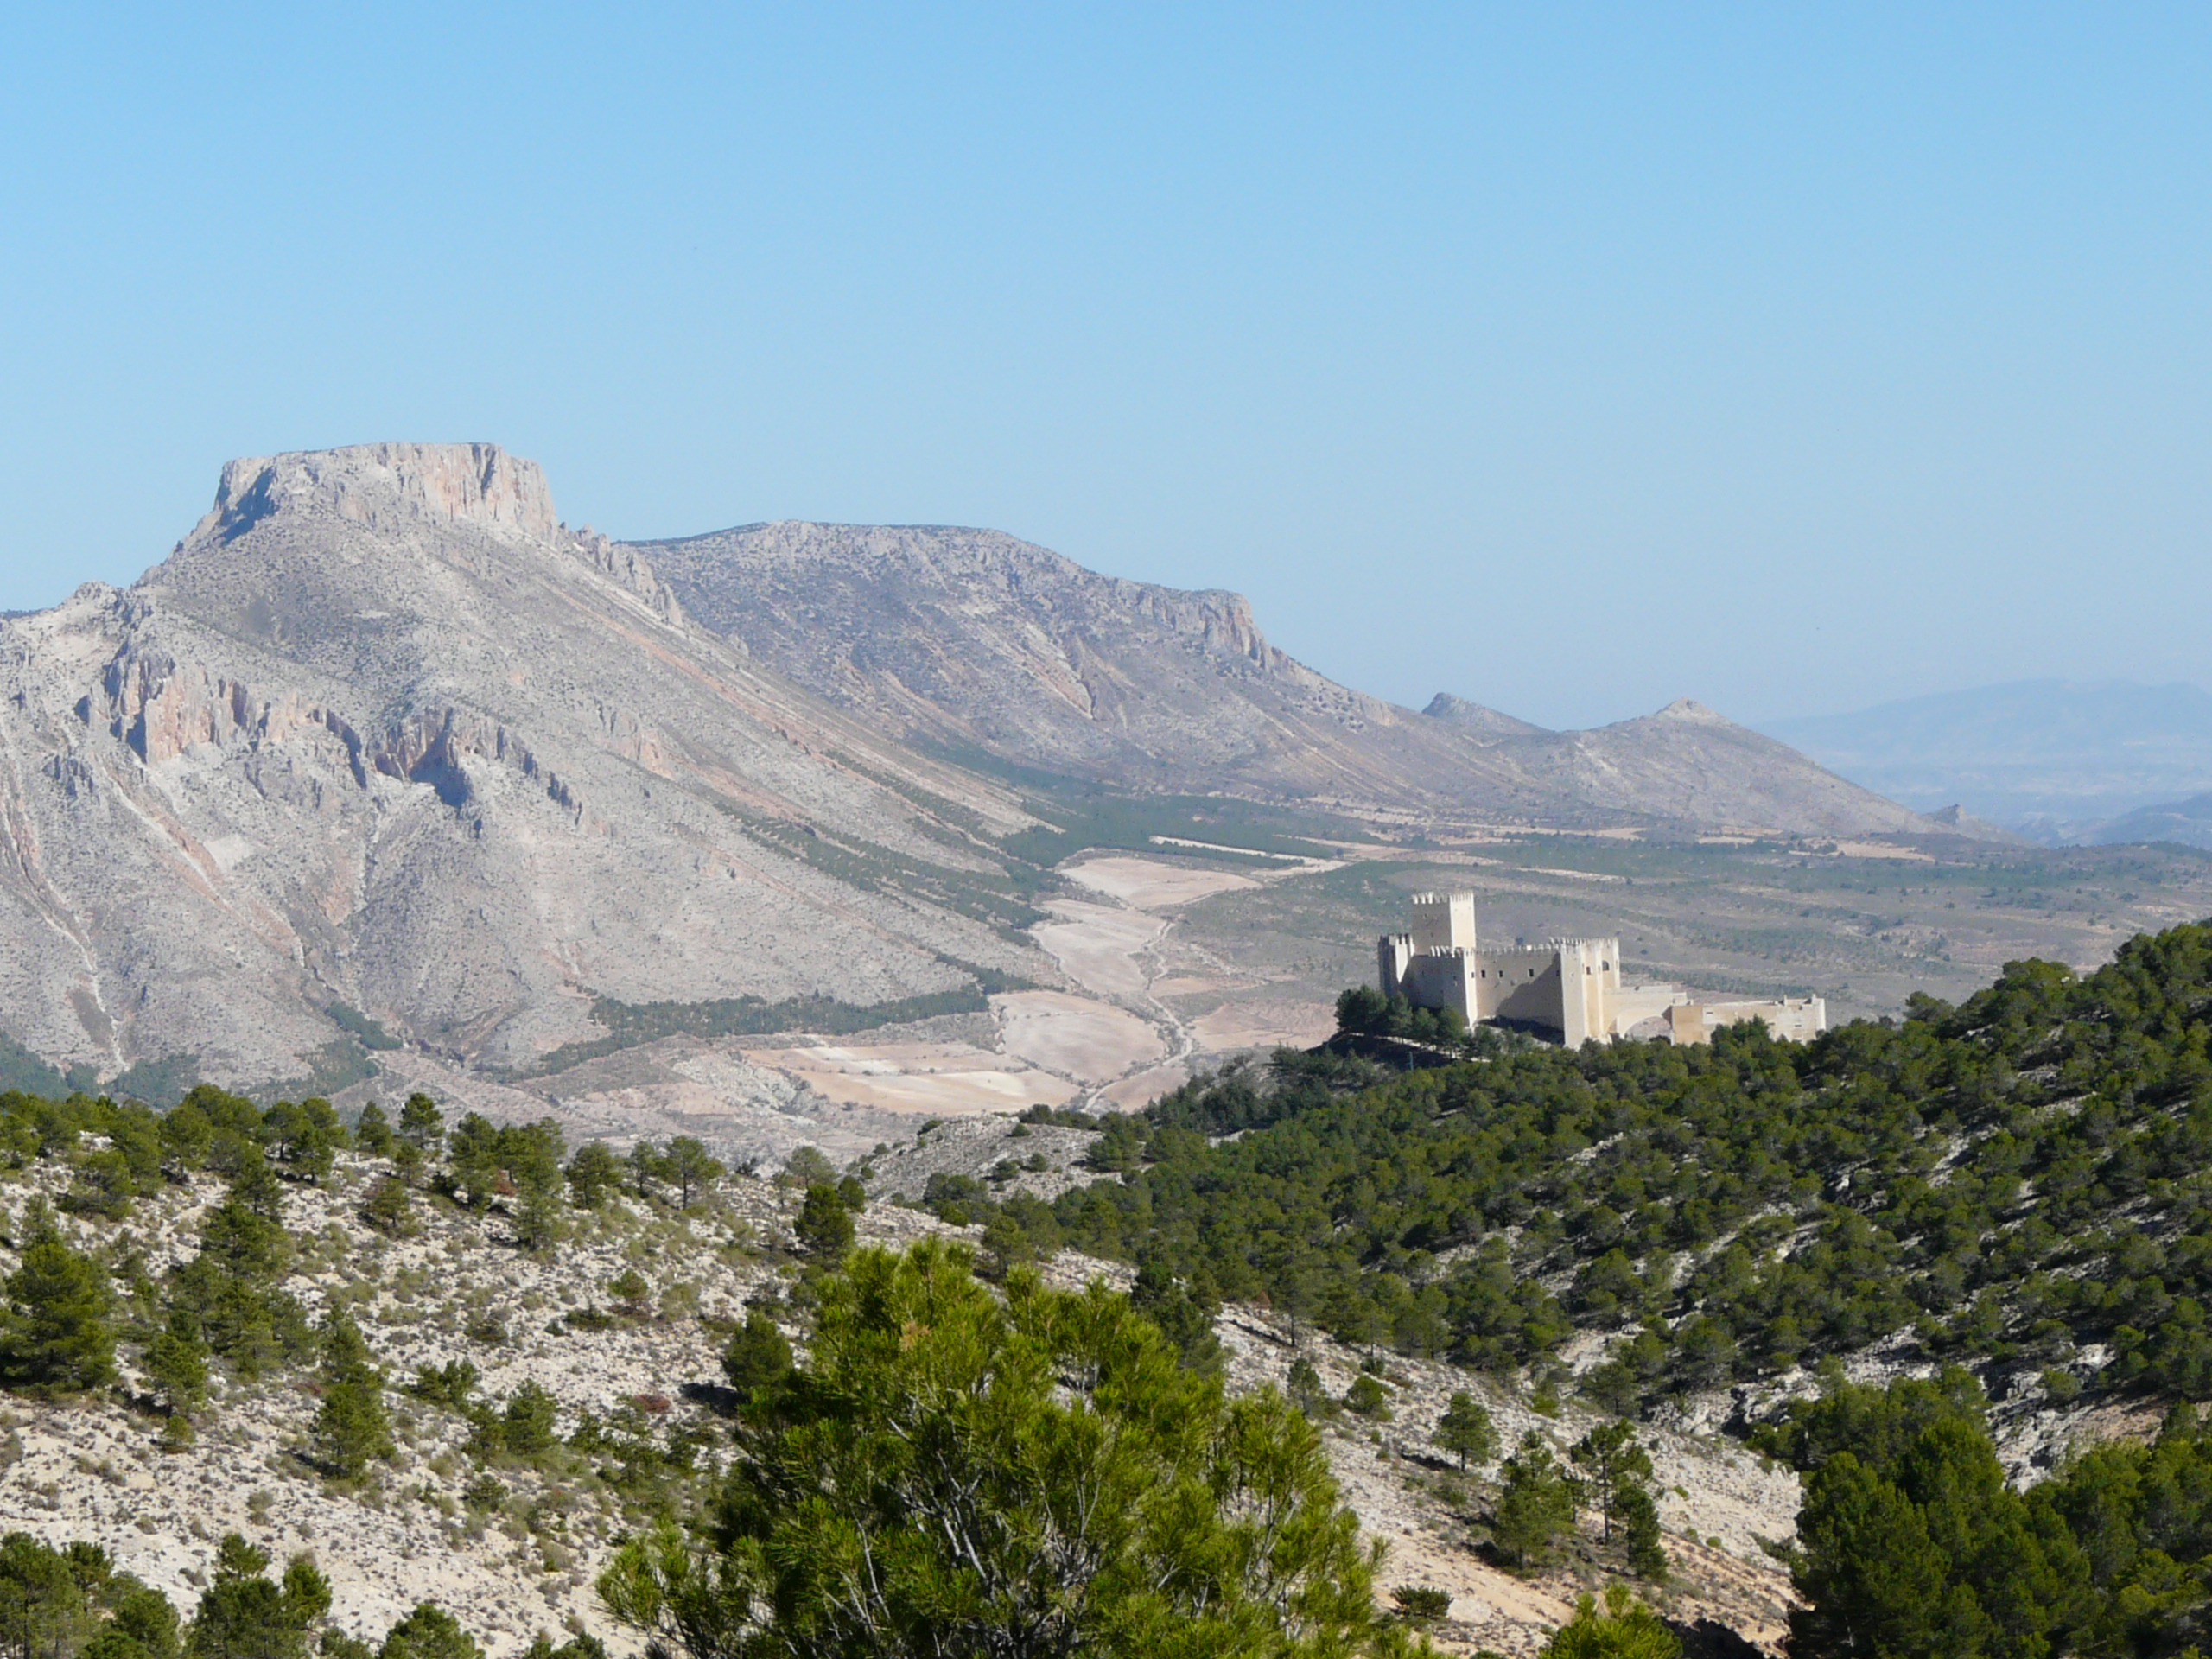 La Muela Mountain and the castle